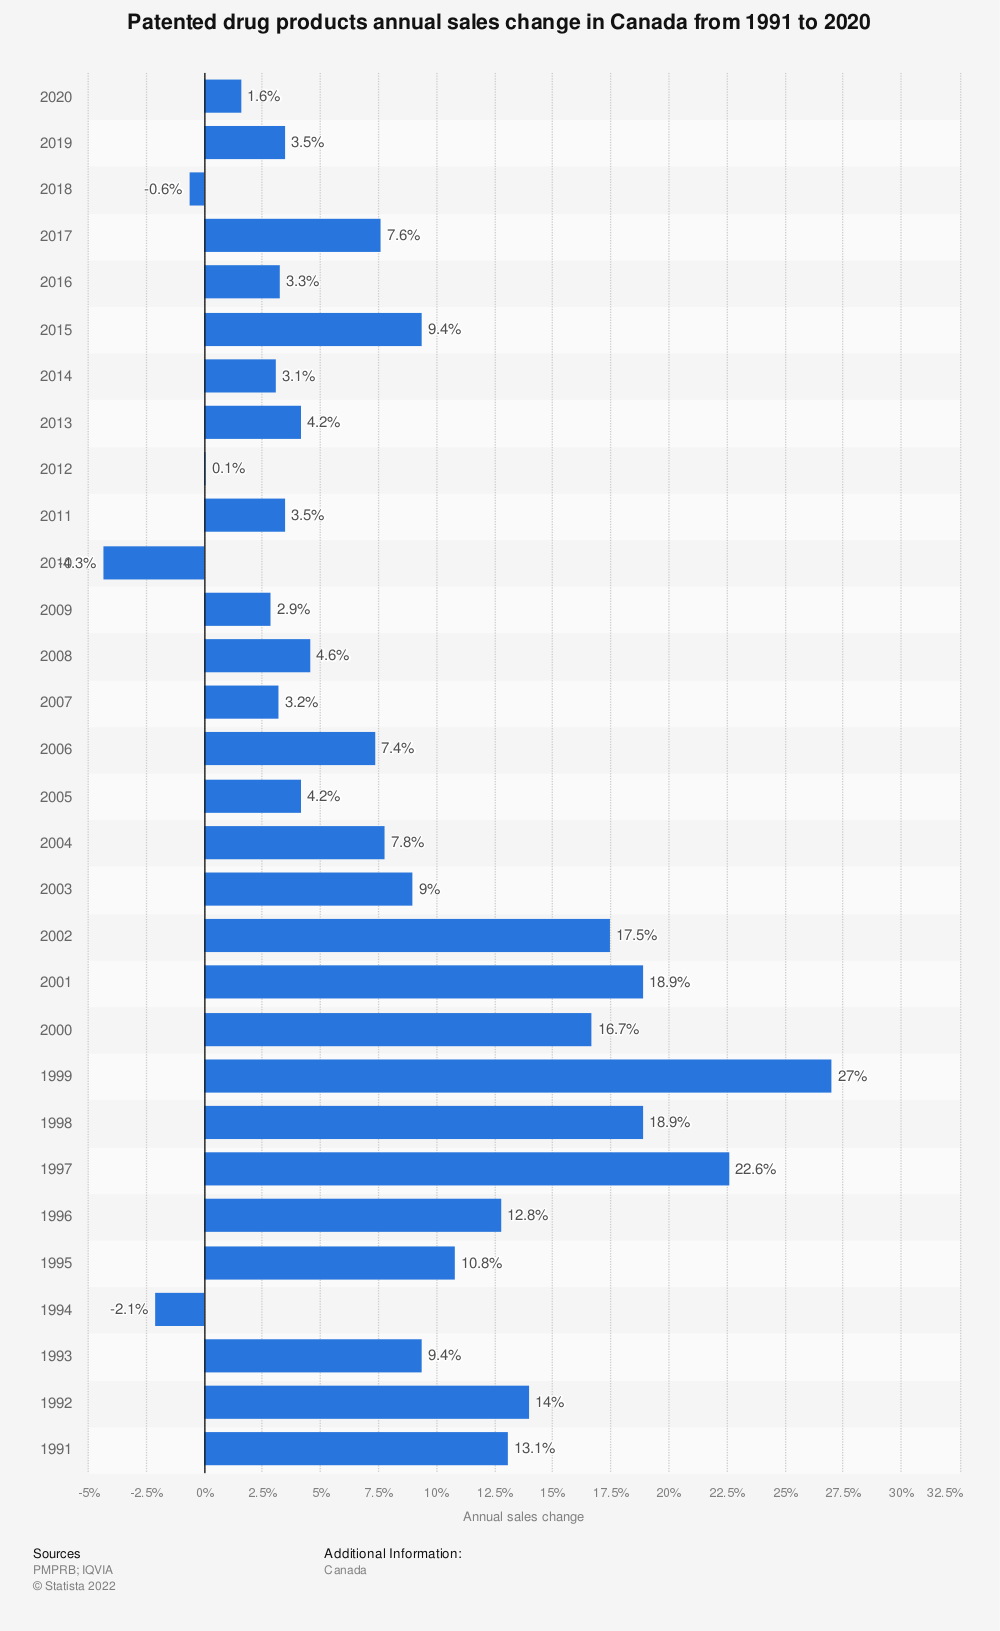 Statistic: Patented drug products annual sales change in Canada from 1991 to 2019 | Statista